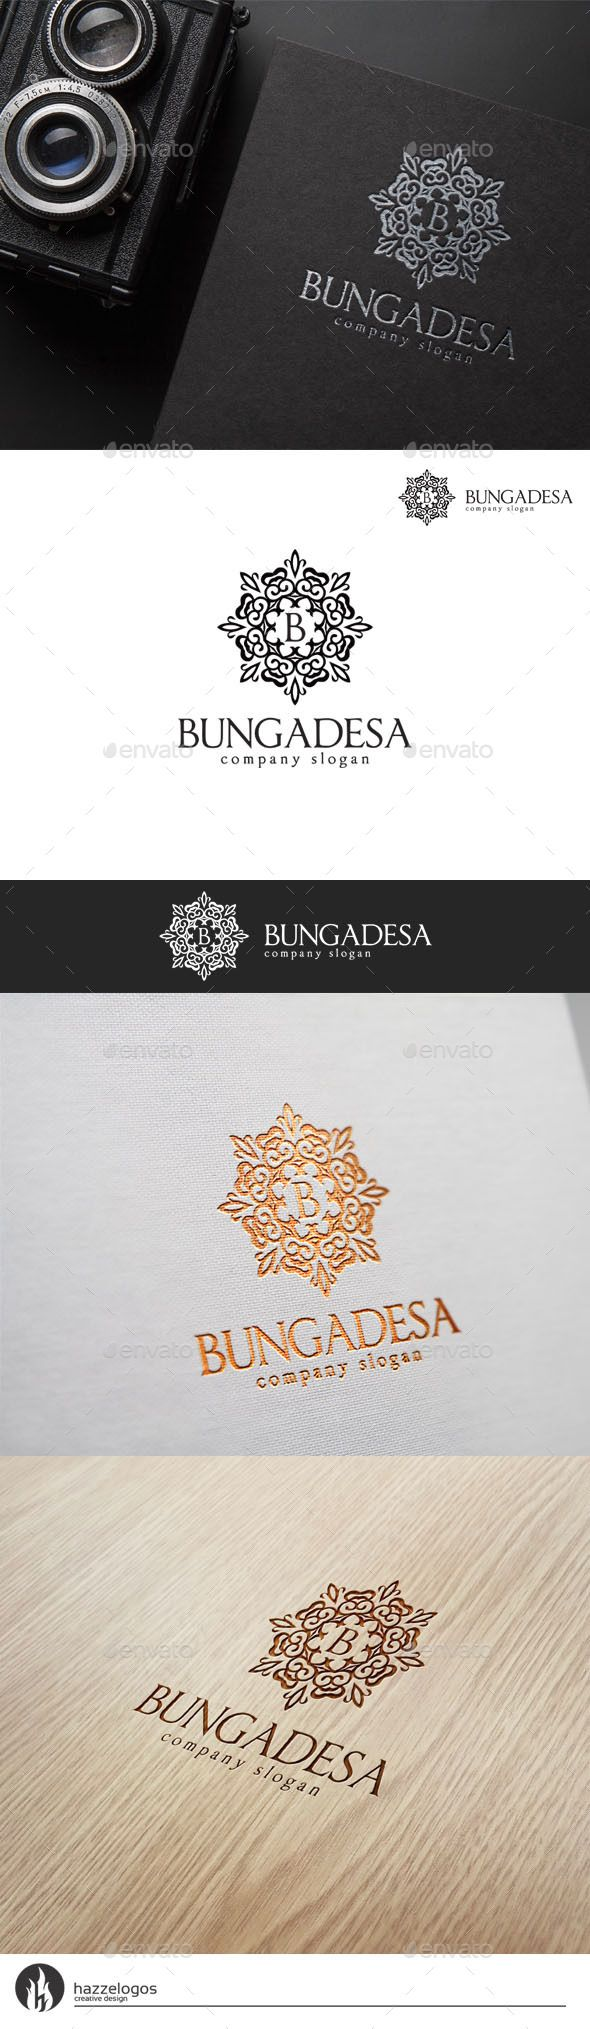 Bungadesa Logo (AI Illustrator, Resizable, CS, apparel, boutique, brand, branding, business, classic, classy, company, corporation, crest, crown, curly, decorative, elegant, emblem, fashion, hotel, imperium, jewelry, luxurious, luxury, ornament, real estate, resort, restaurant, royal, vector, victorian, vintage, winery)